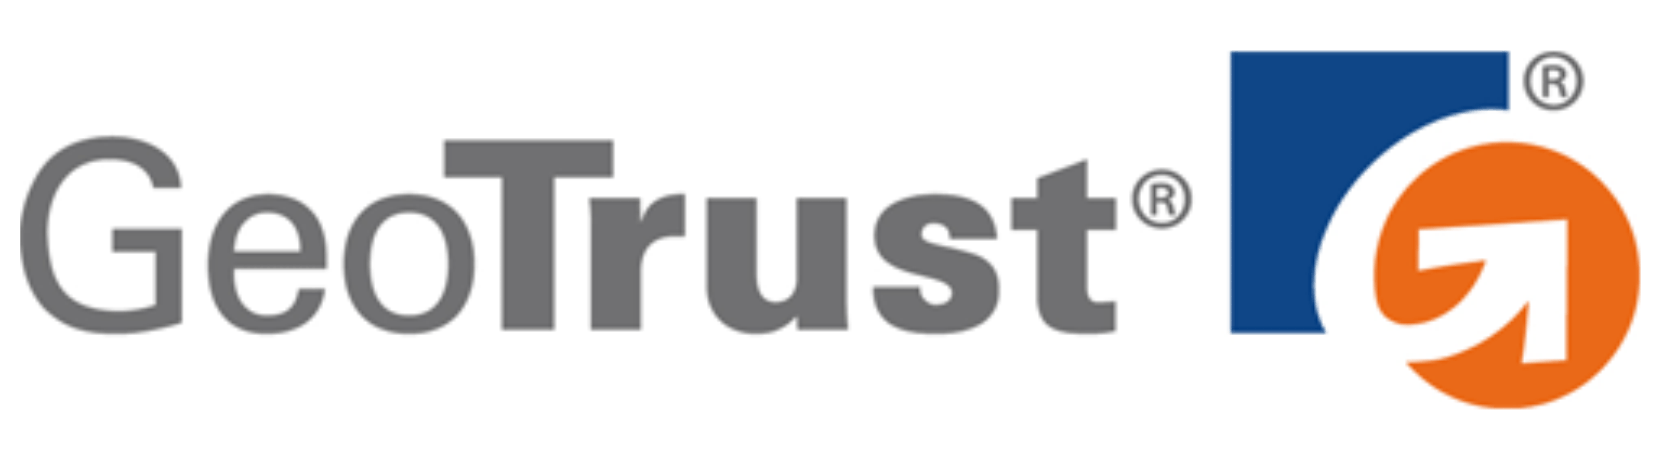 Geotrust and DigiHost